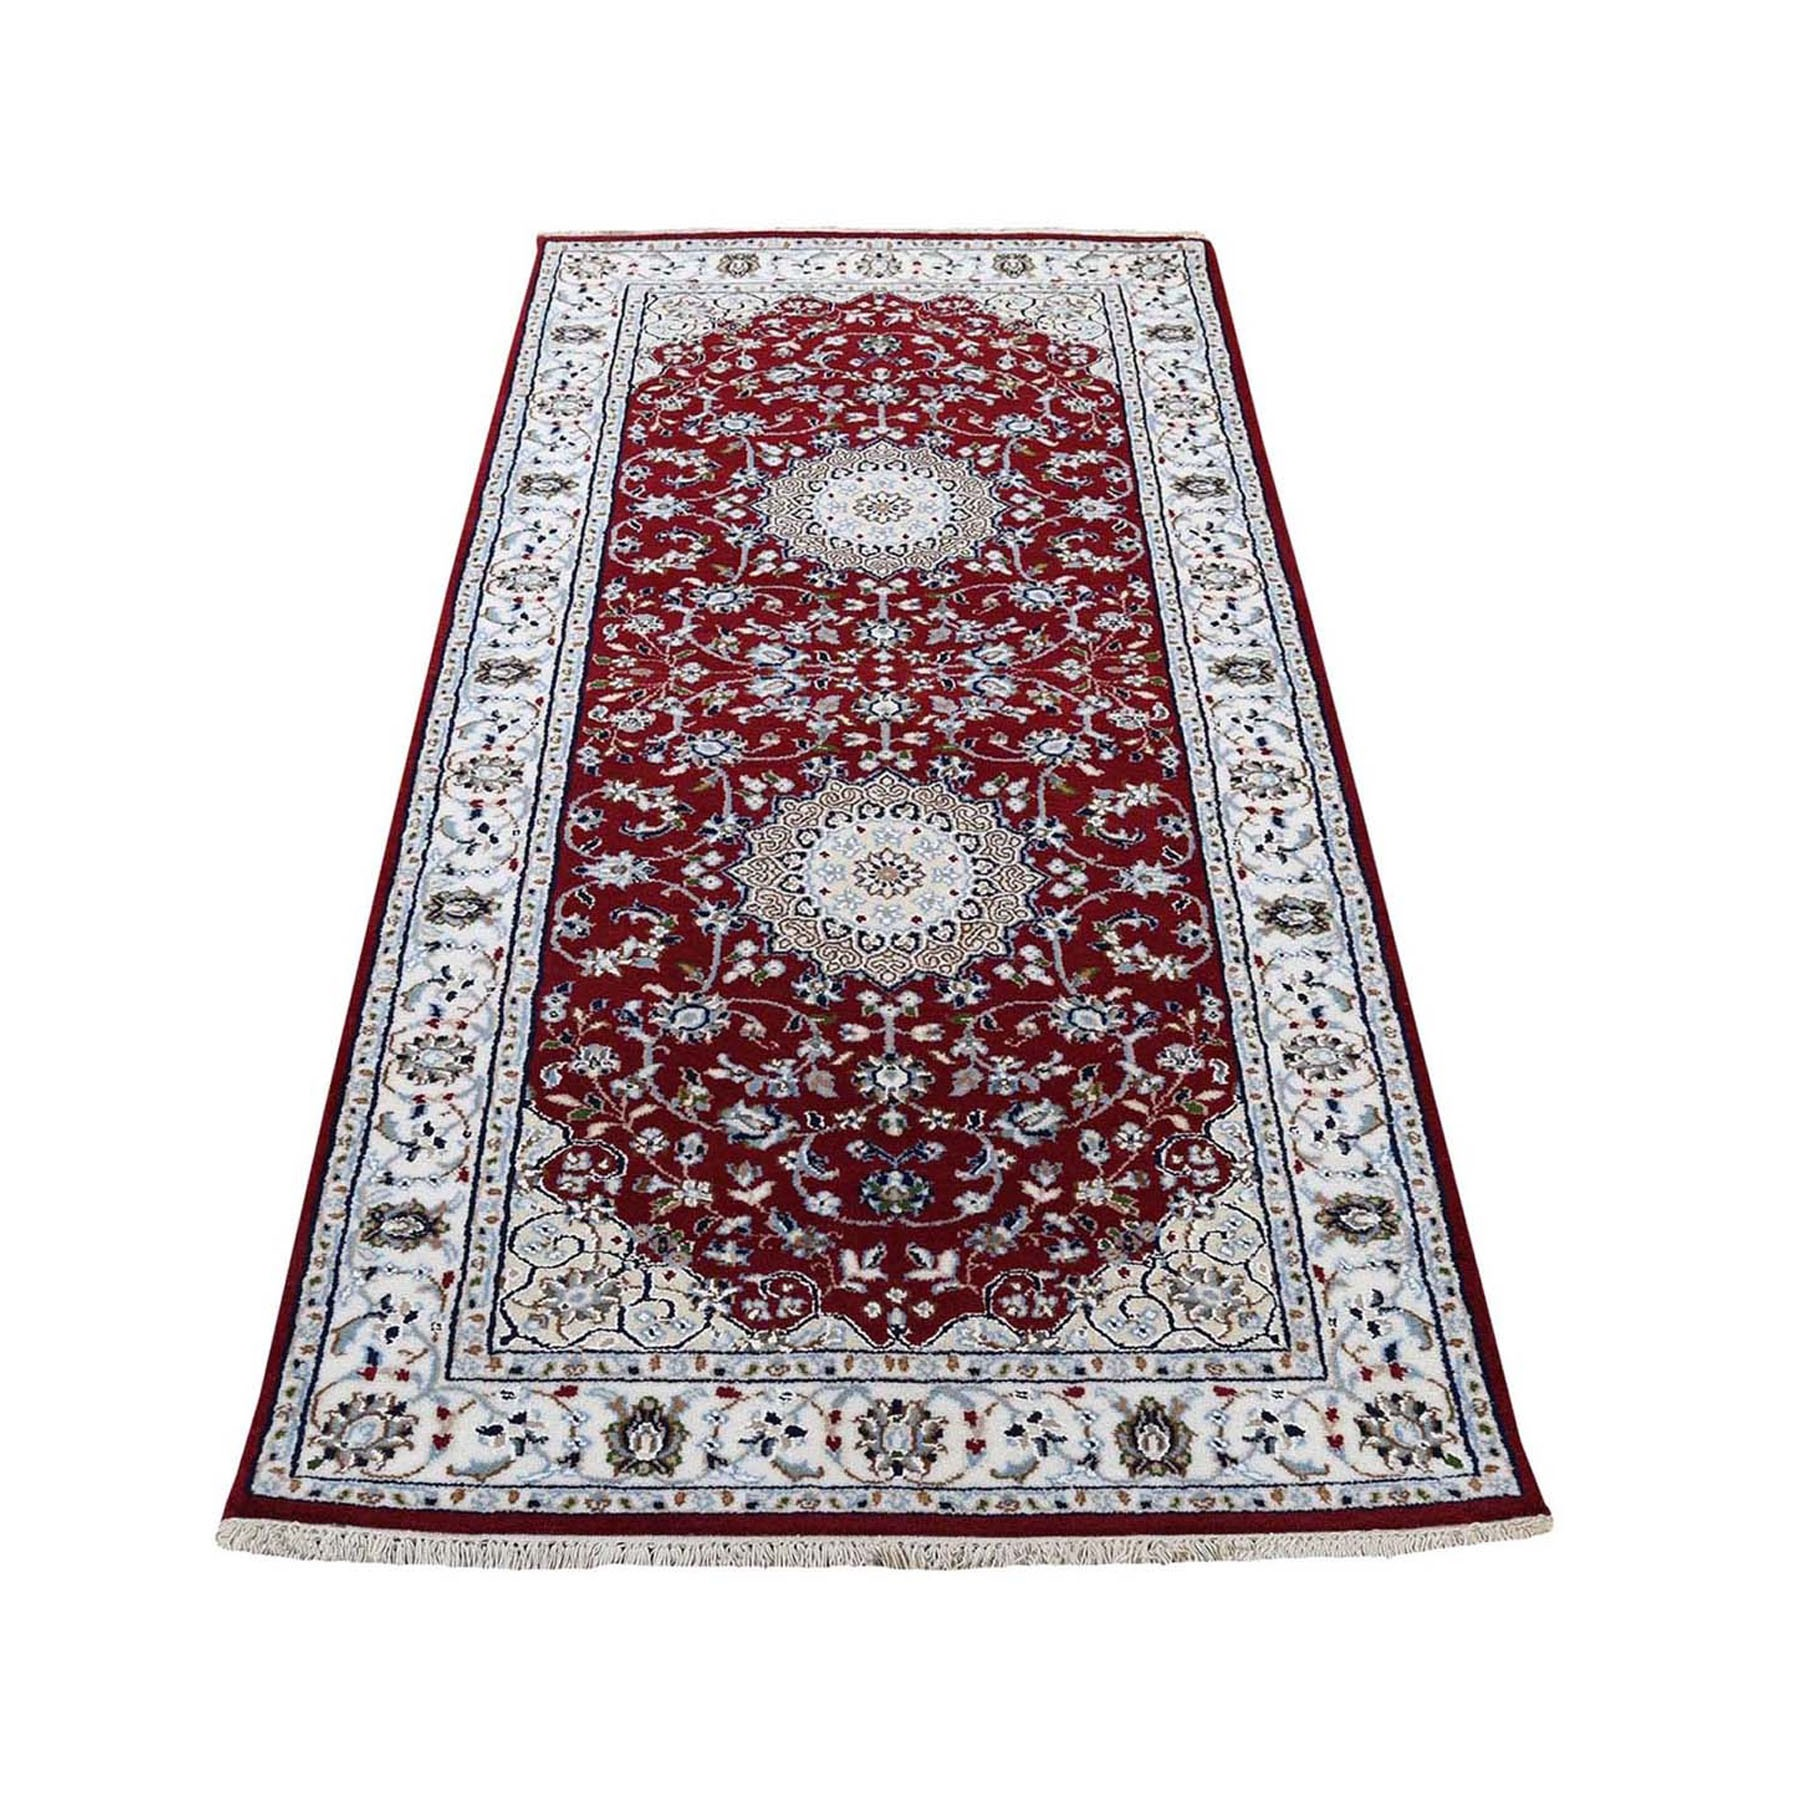 "2'8""x6'1"" Red Nain Runner Wool And Silk 250 KPSI Hand Knotted Oriental Rug"